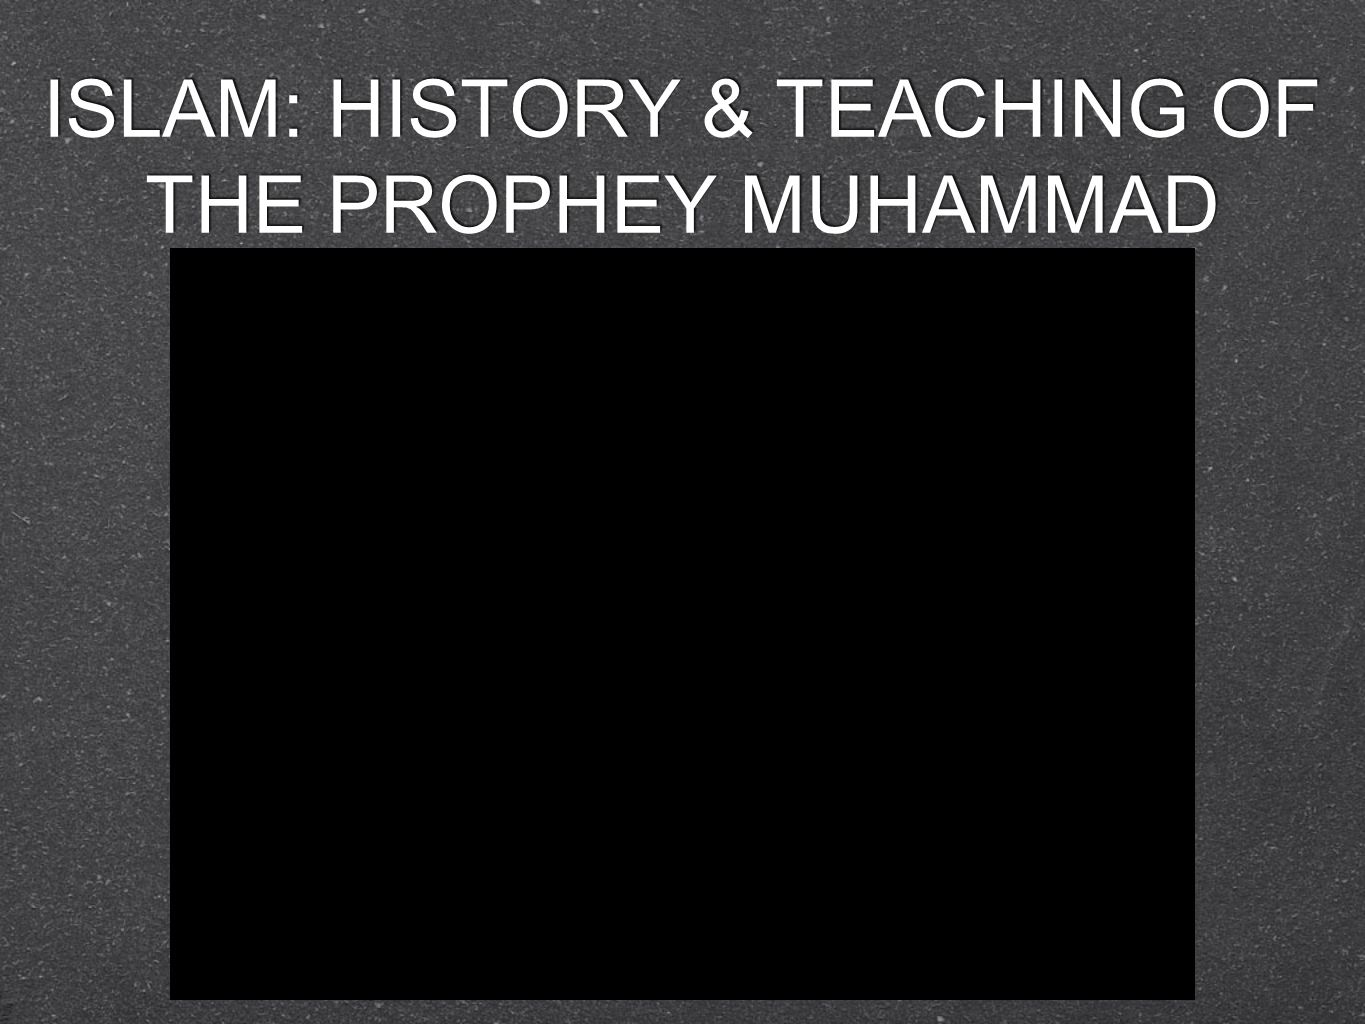 ISLAM: HISTORY & TEACHING OF THE PROPHEY MUHAMMAD